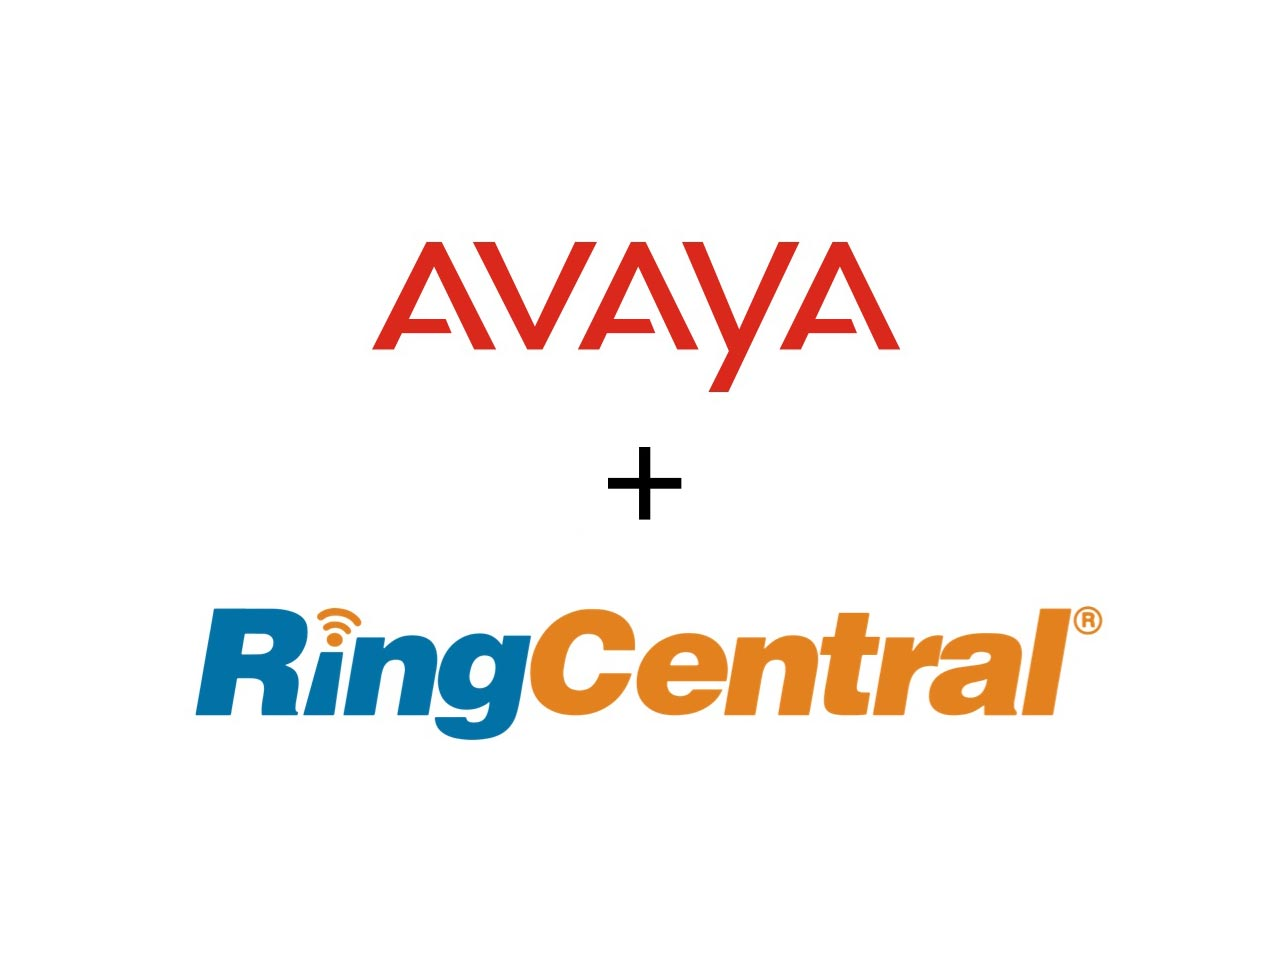 Avaya Worldwide Leader In Contact Center Unified